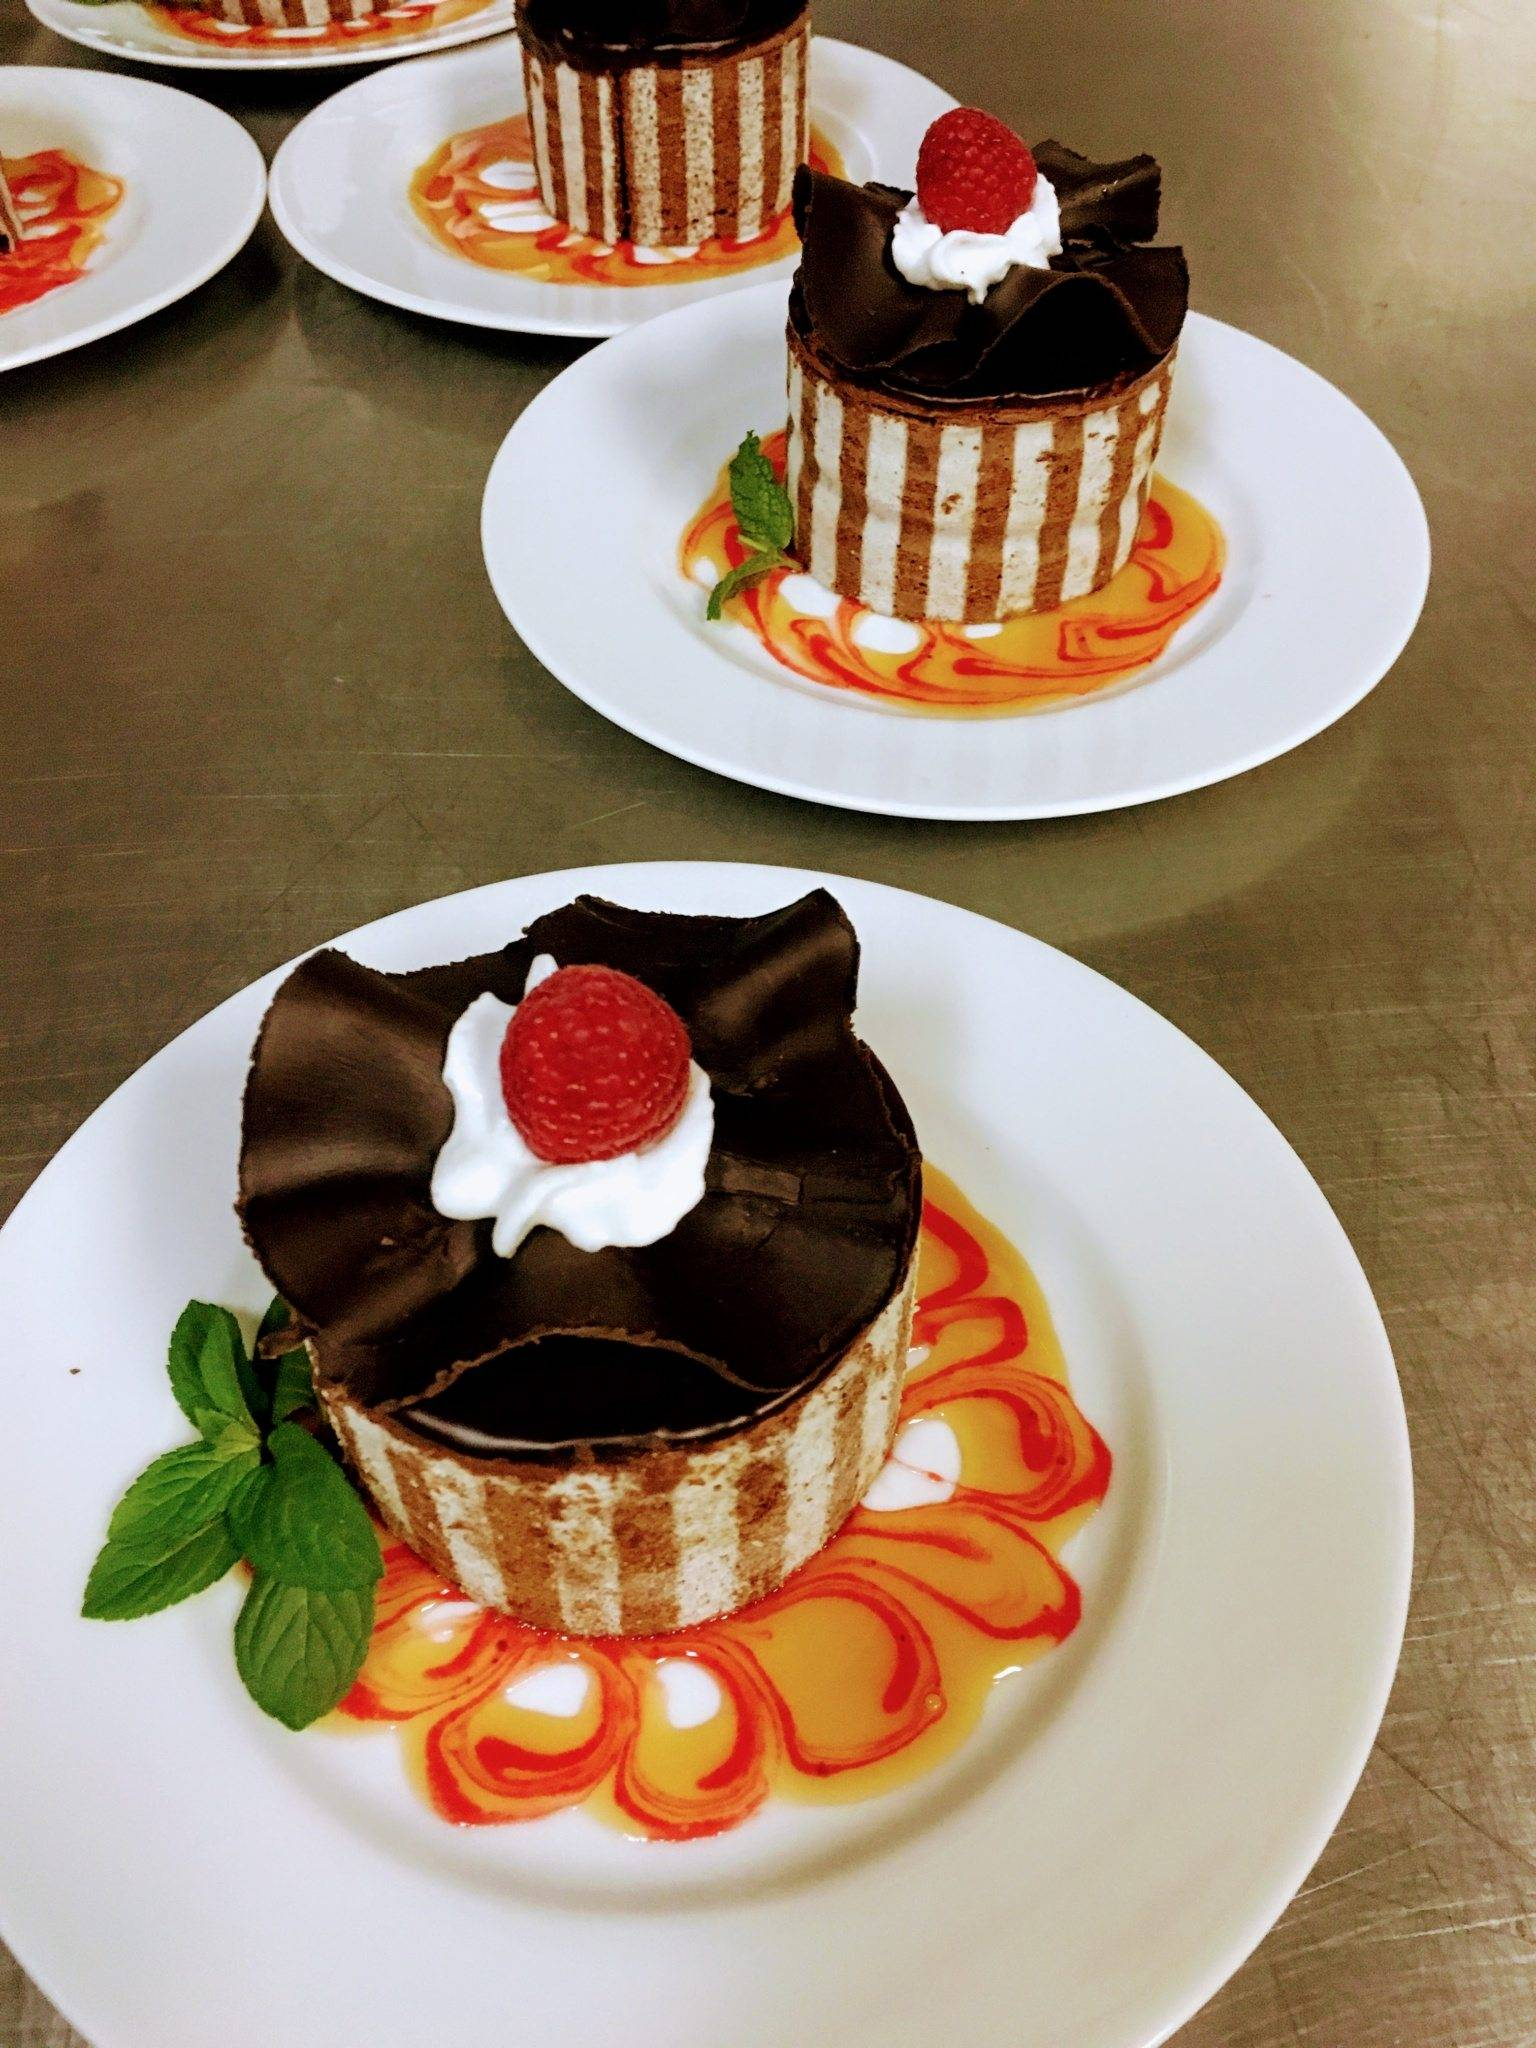 Personal chocolate cake topped with a raspberry and cream